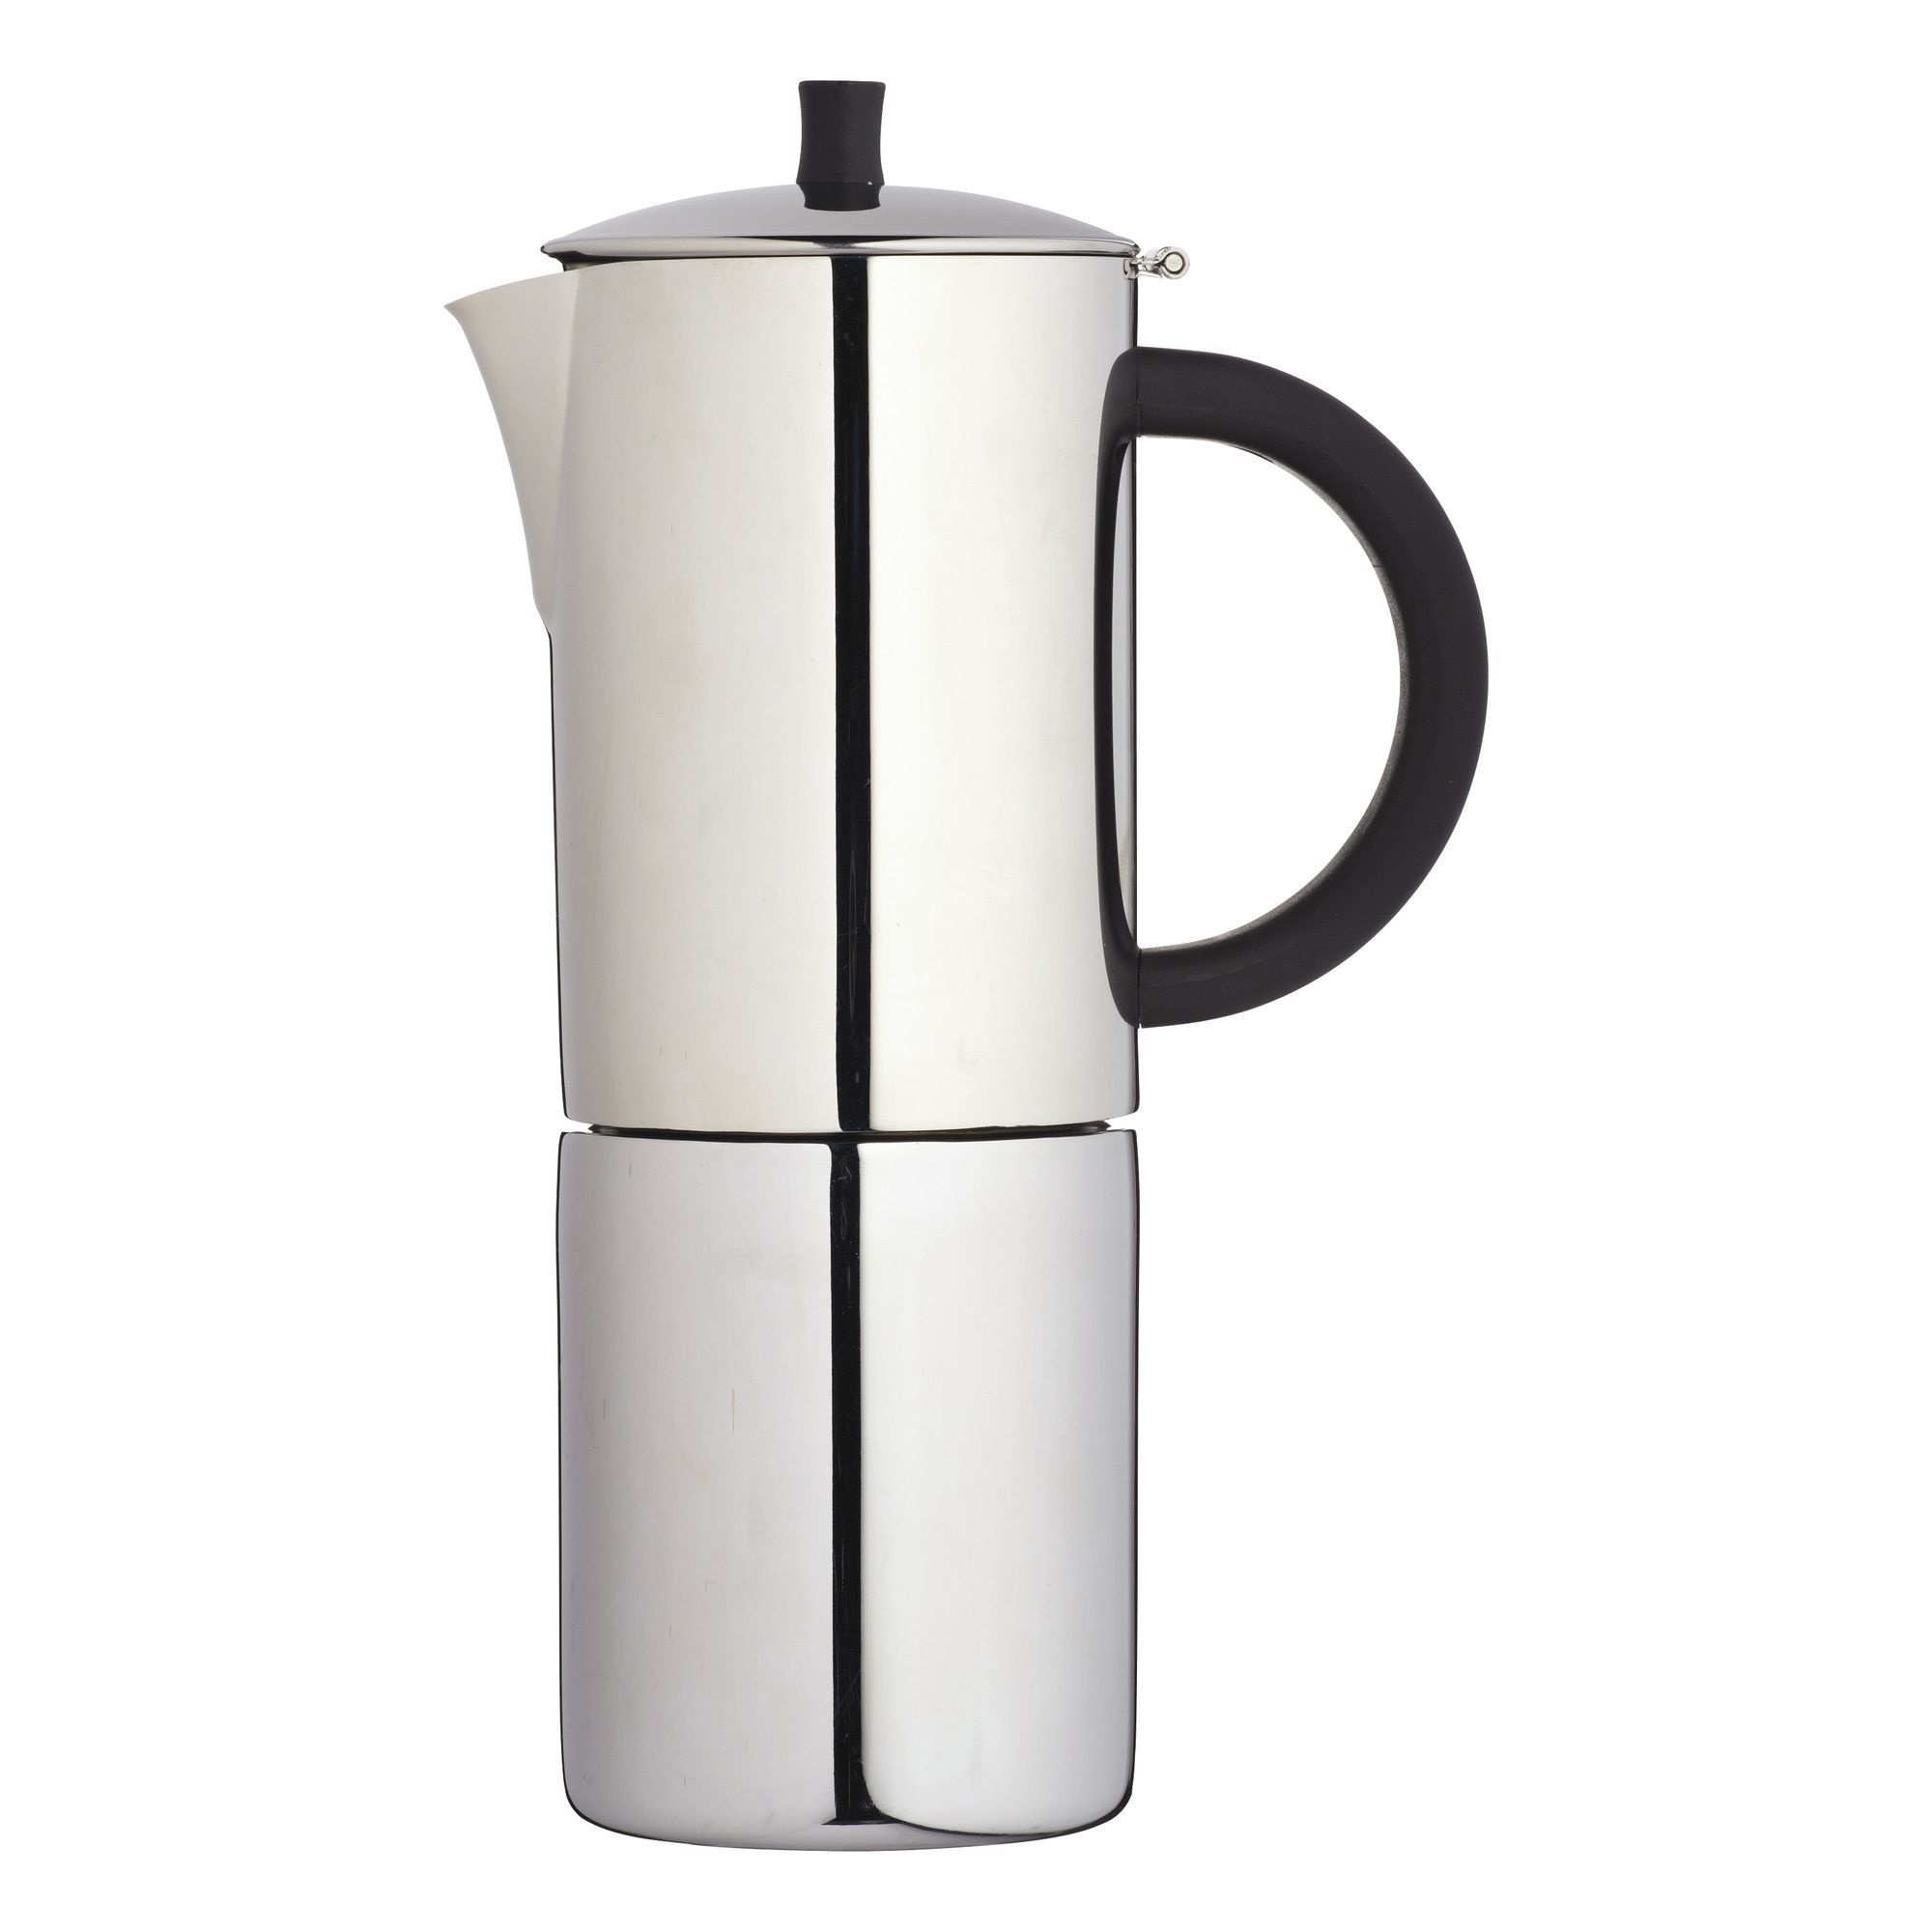 How To Use Le Xpress Coffee Maker : Other Kitchen Craft Le Xpress Stainless Steel Espresso Ten Cup Coffee Maker 500ml - Best price ...